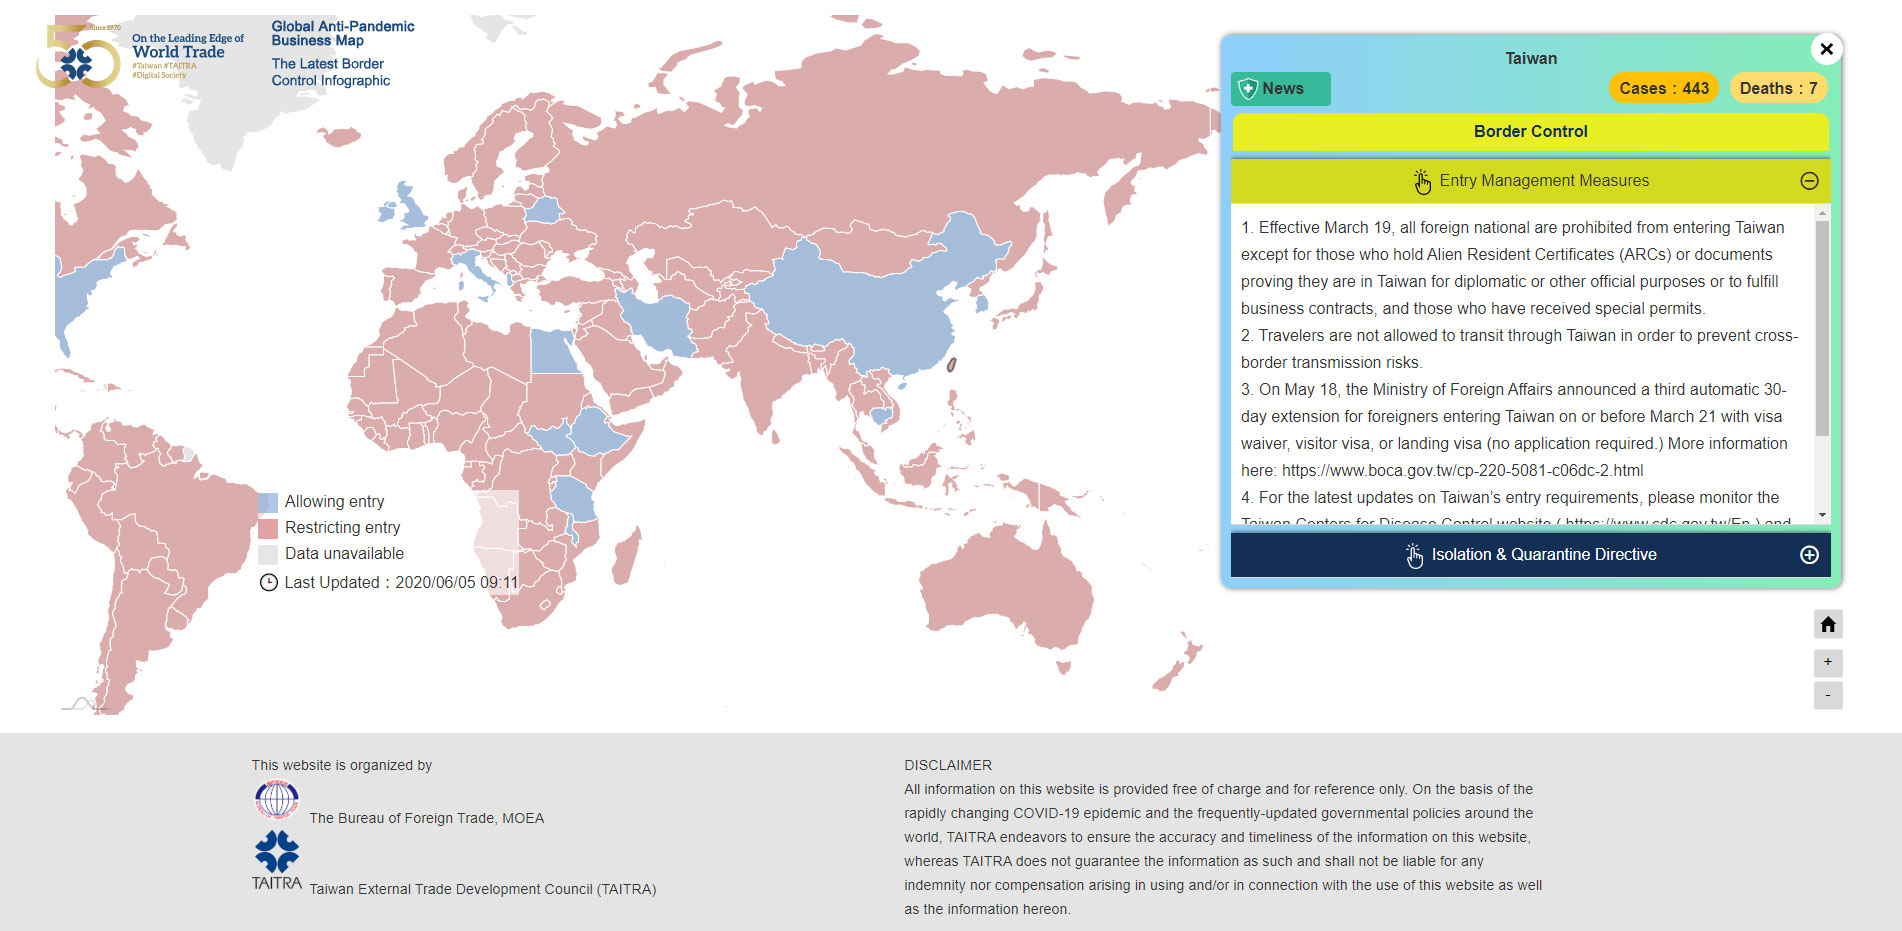 The Global Anti-Pandemic Business Map